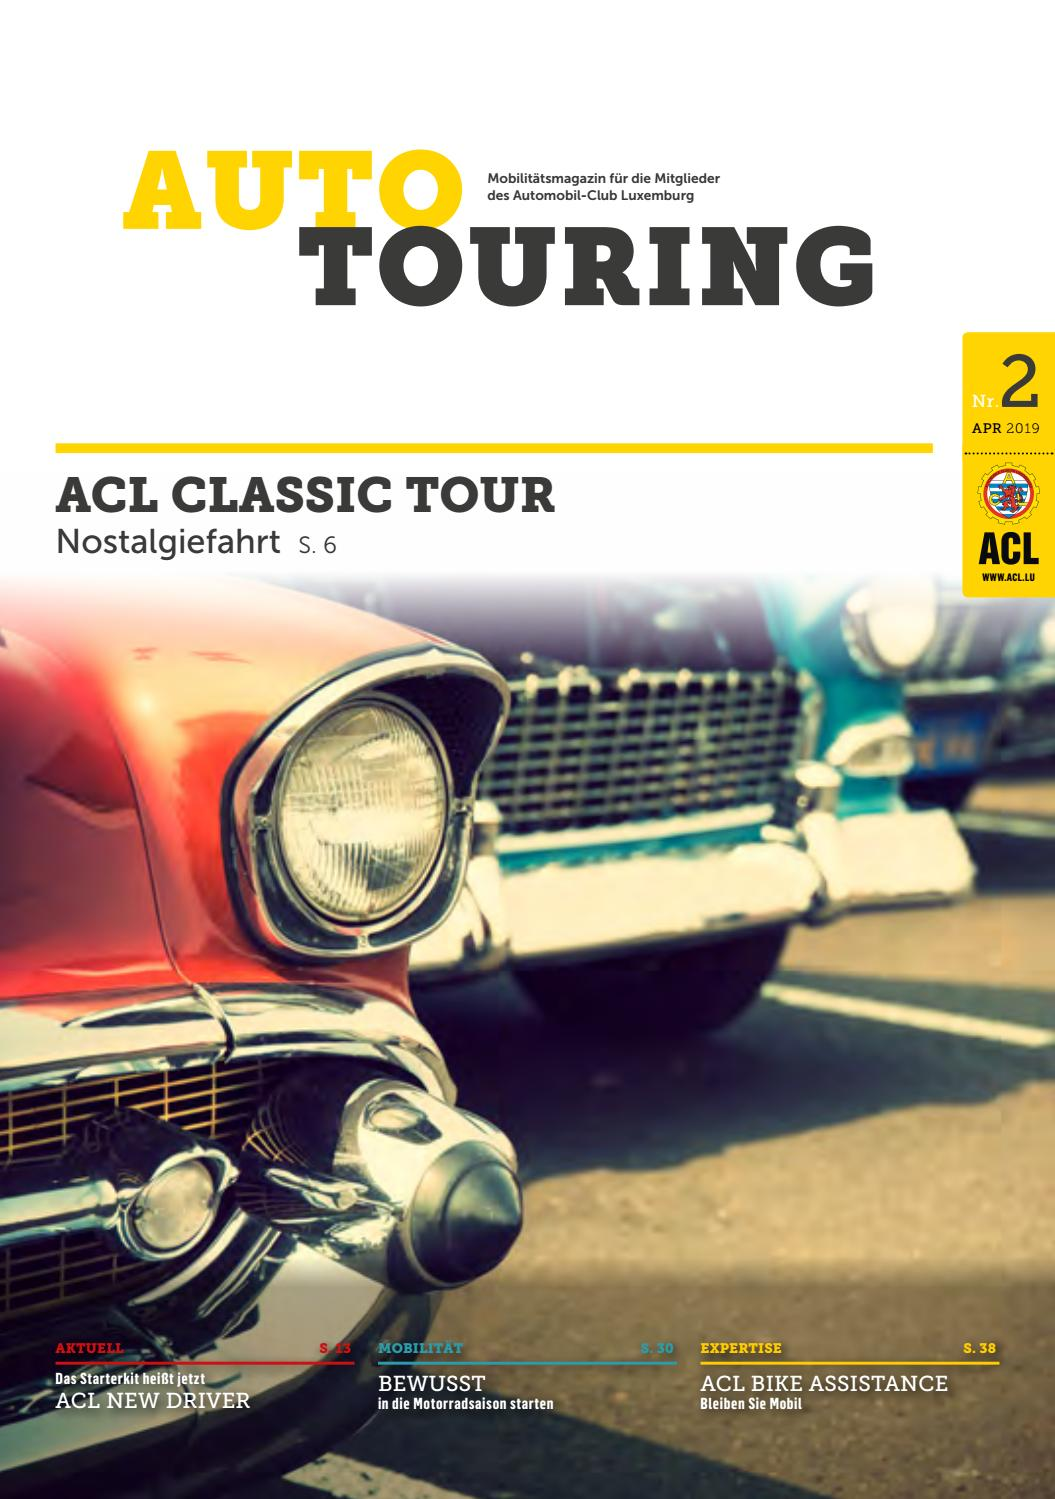 Autotouring - April 2019 by ACL - issuu